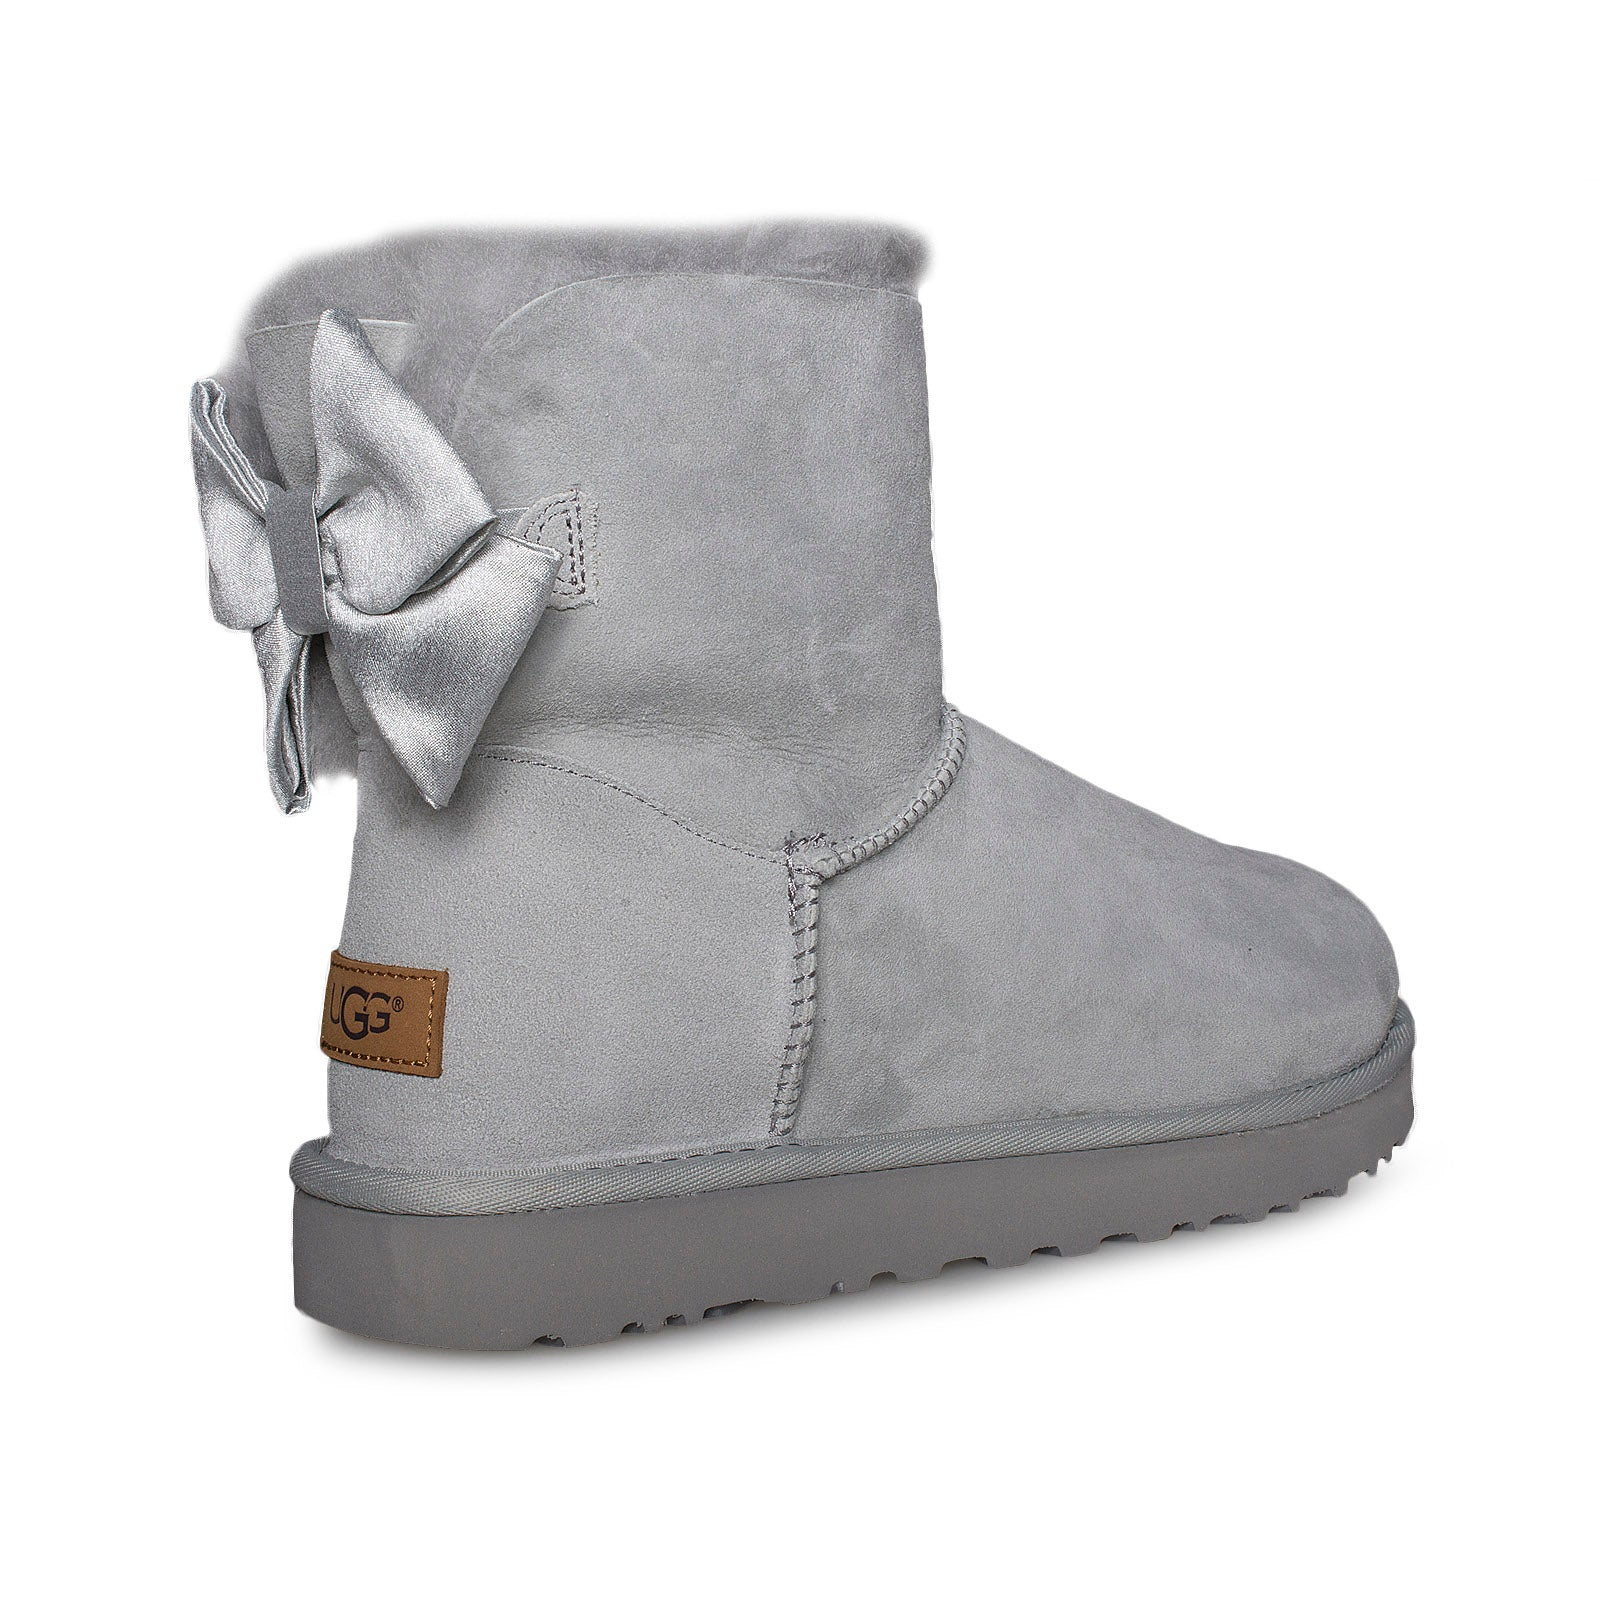 UGG Mini Bailey Bow II Glam Grey Violet Boots Women's